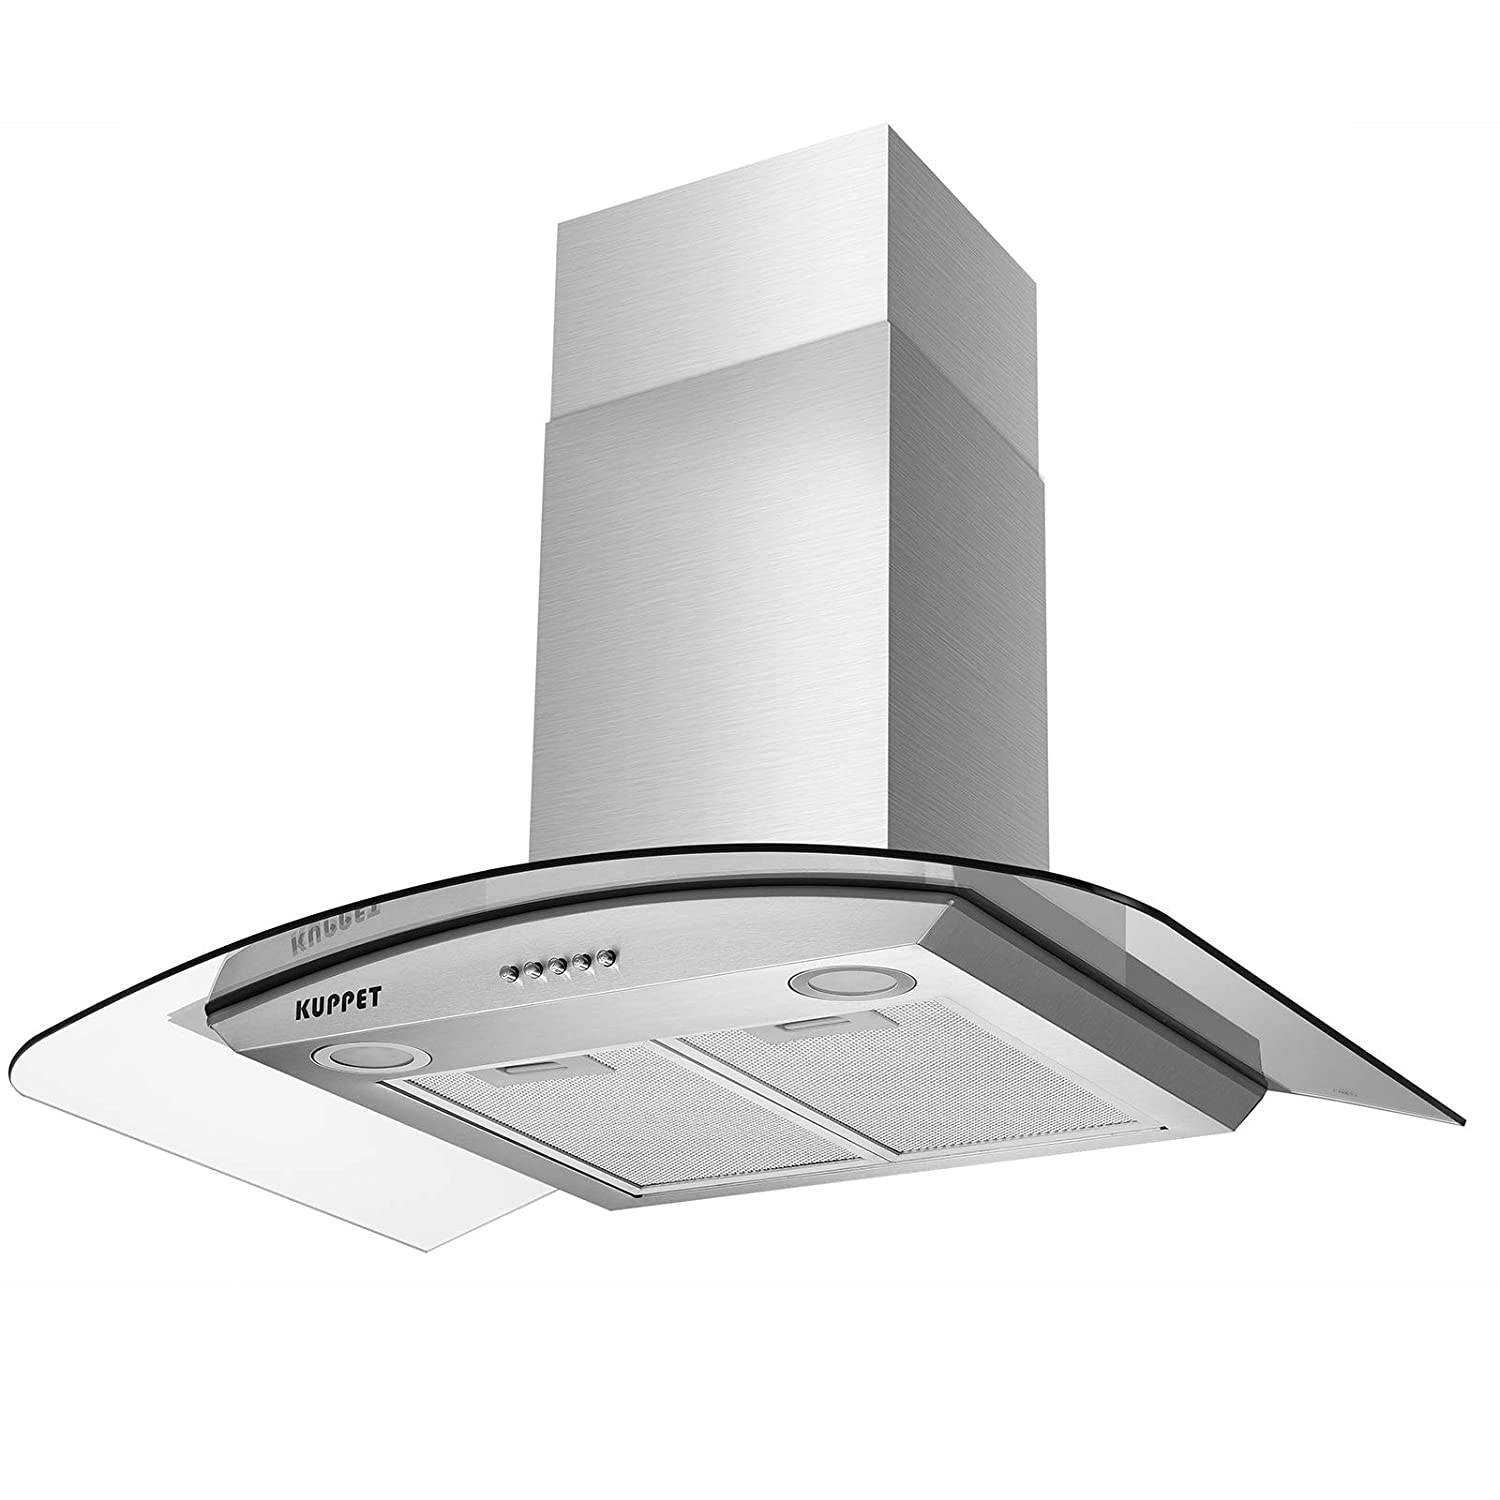 KUPPET NY-750Q Kitchen Bath Collection 30' Wall Mount Range Hood, Tempered Glass with High-End LED Lights, Aluminum Mesh Filter, Push Button 3 Speed Controls, Silver Stainless Steel H211-15